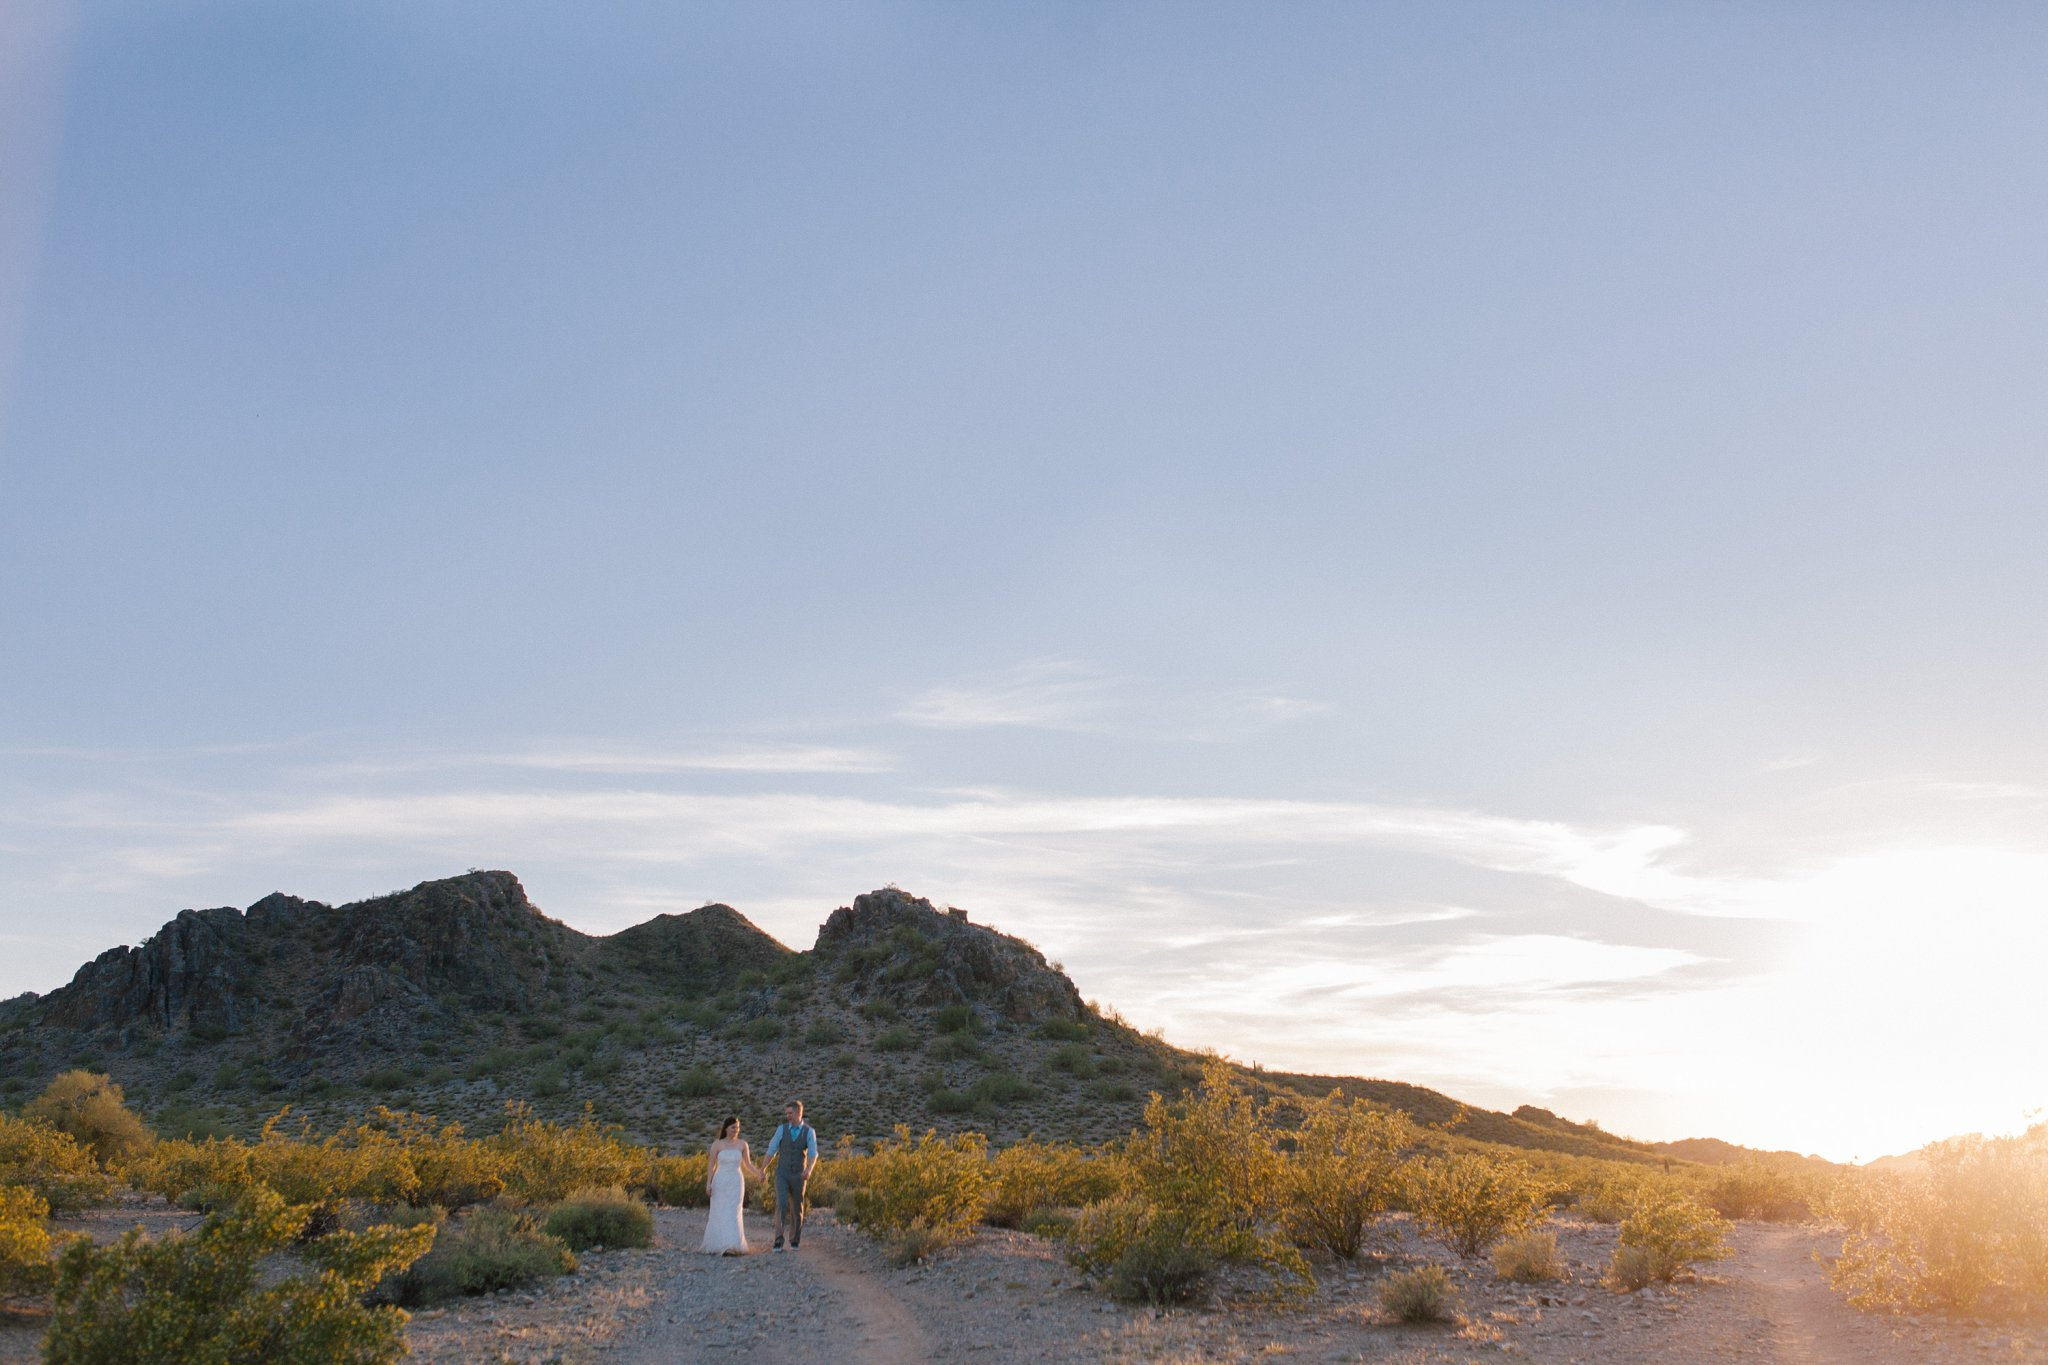 scenic mountain desert elopement in Phoenix